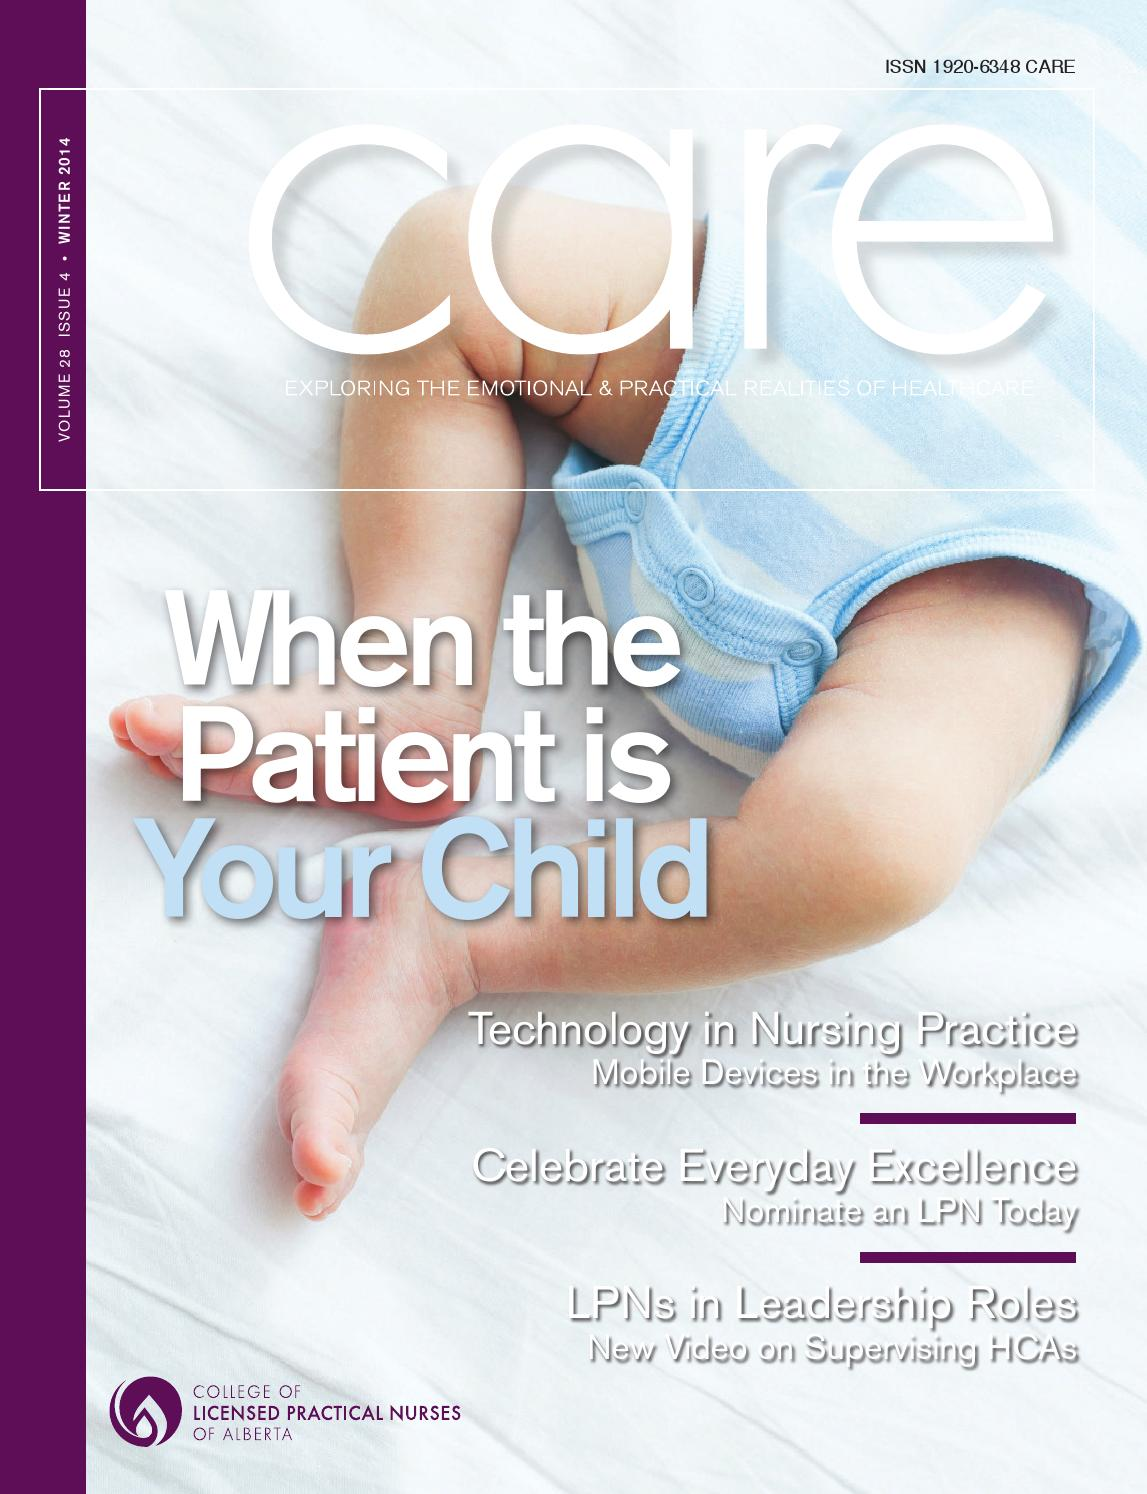 Care winter 2014 college of licensed practical nurses of care winter 2014 college of licensed practical nurses of alberta by college of licensed practical nurses of alberta issuu aiddatafo Images